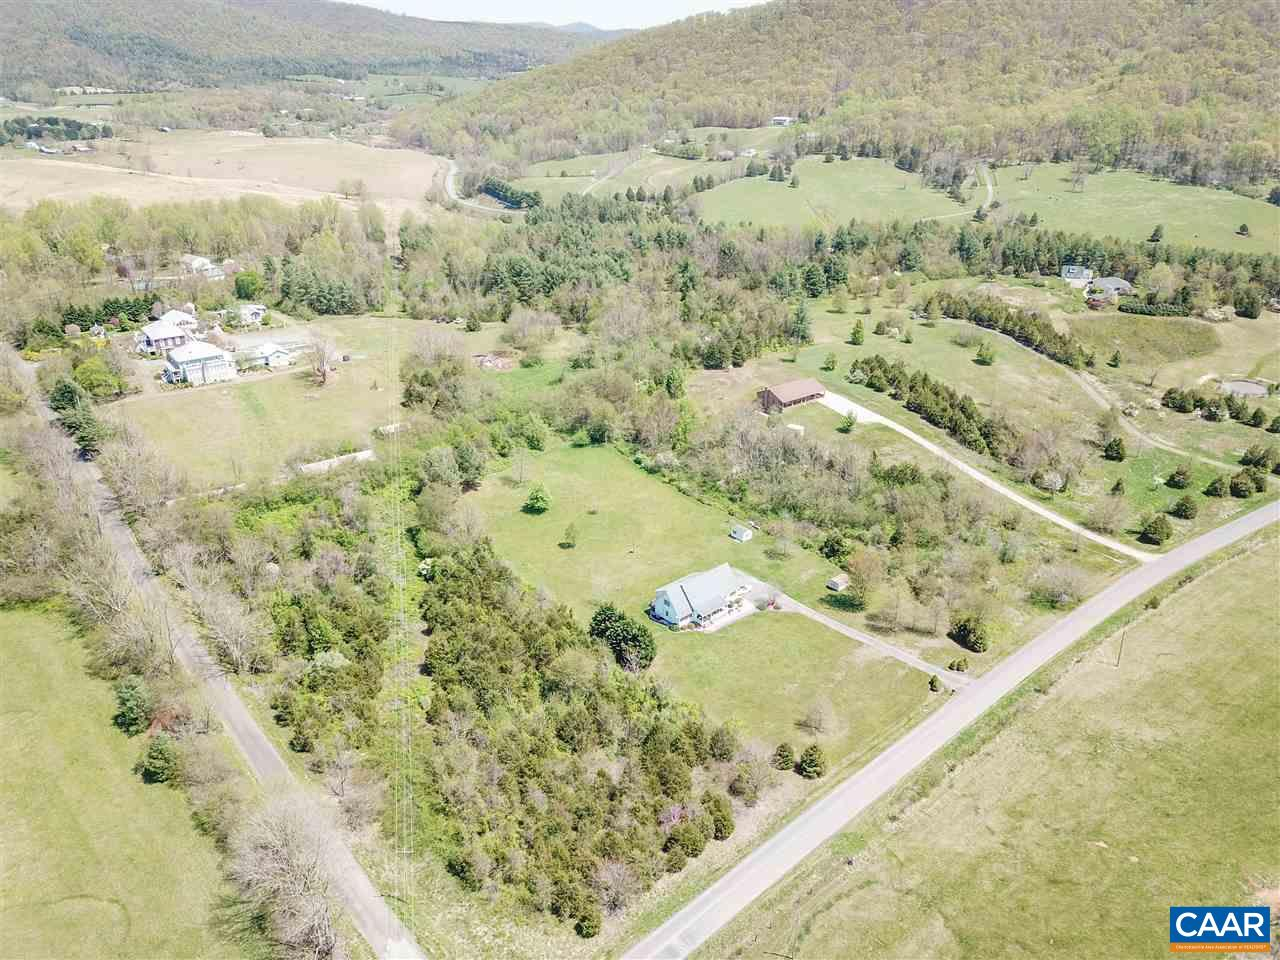 land for sale , MLS #577186, 1026E Rosebrook Rd